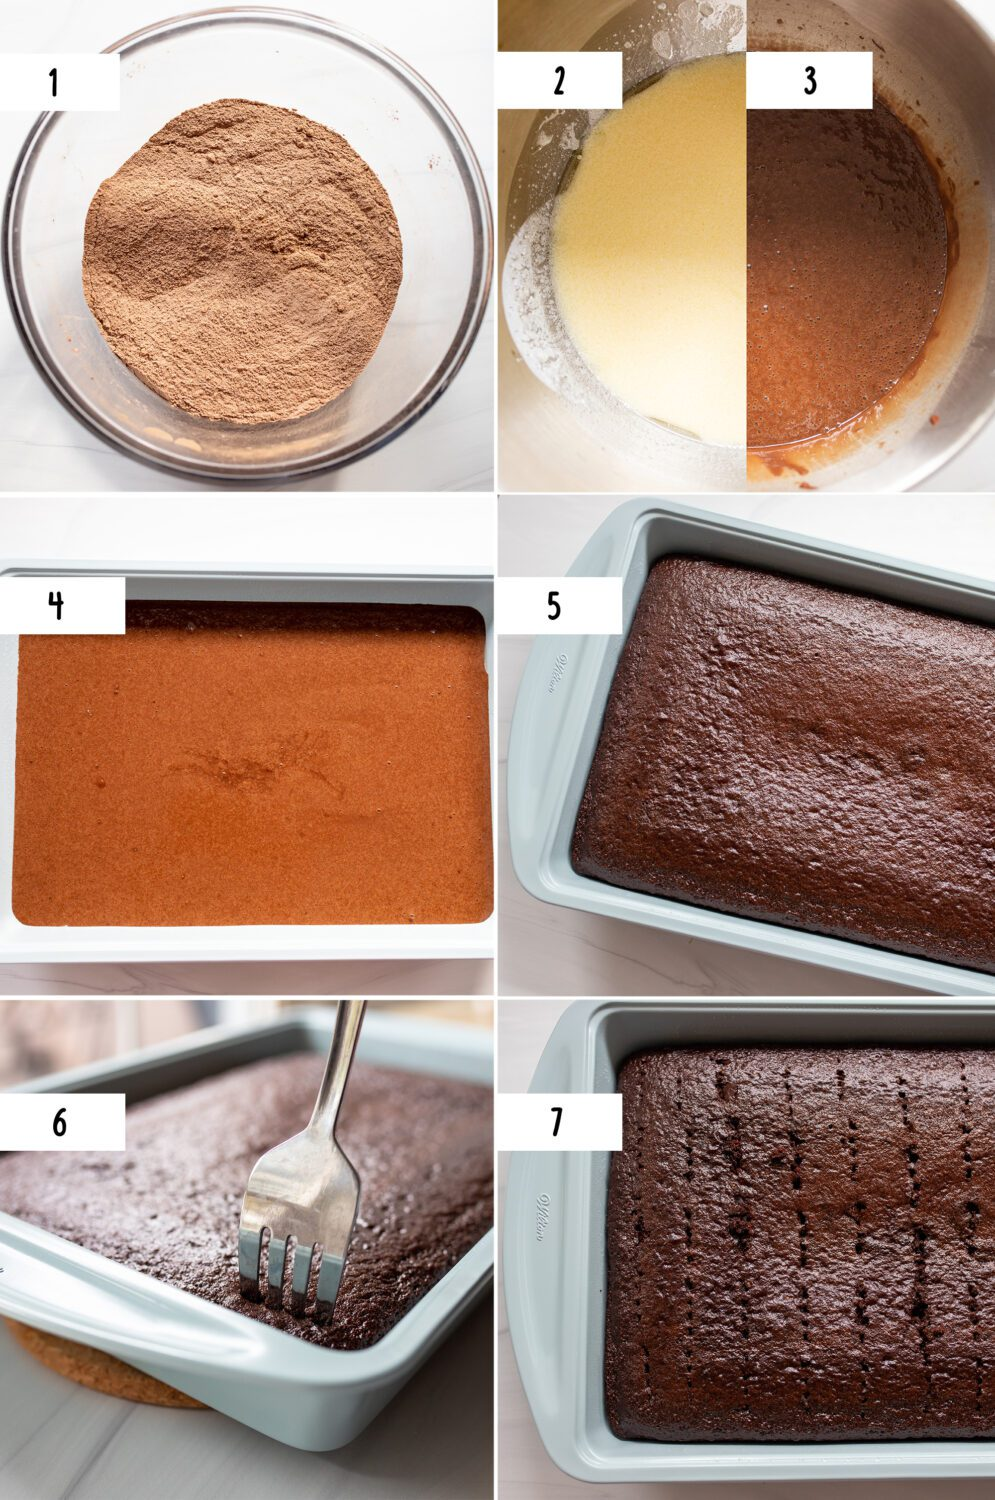 steps to make chocolate tres leches cake